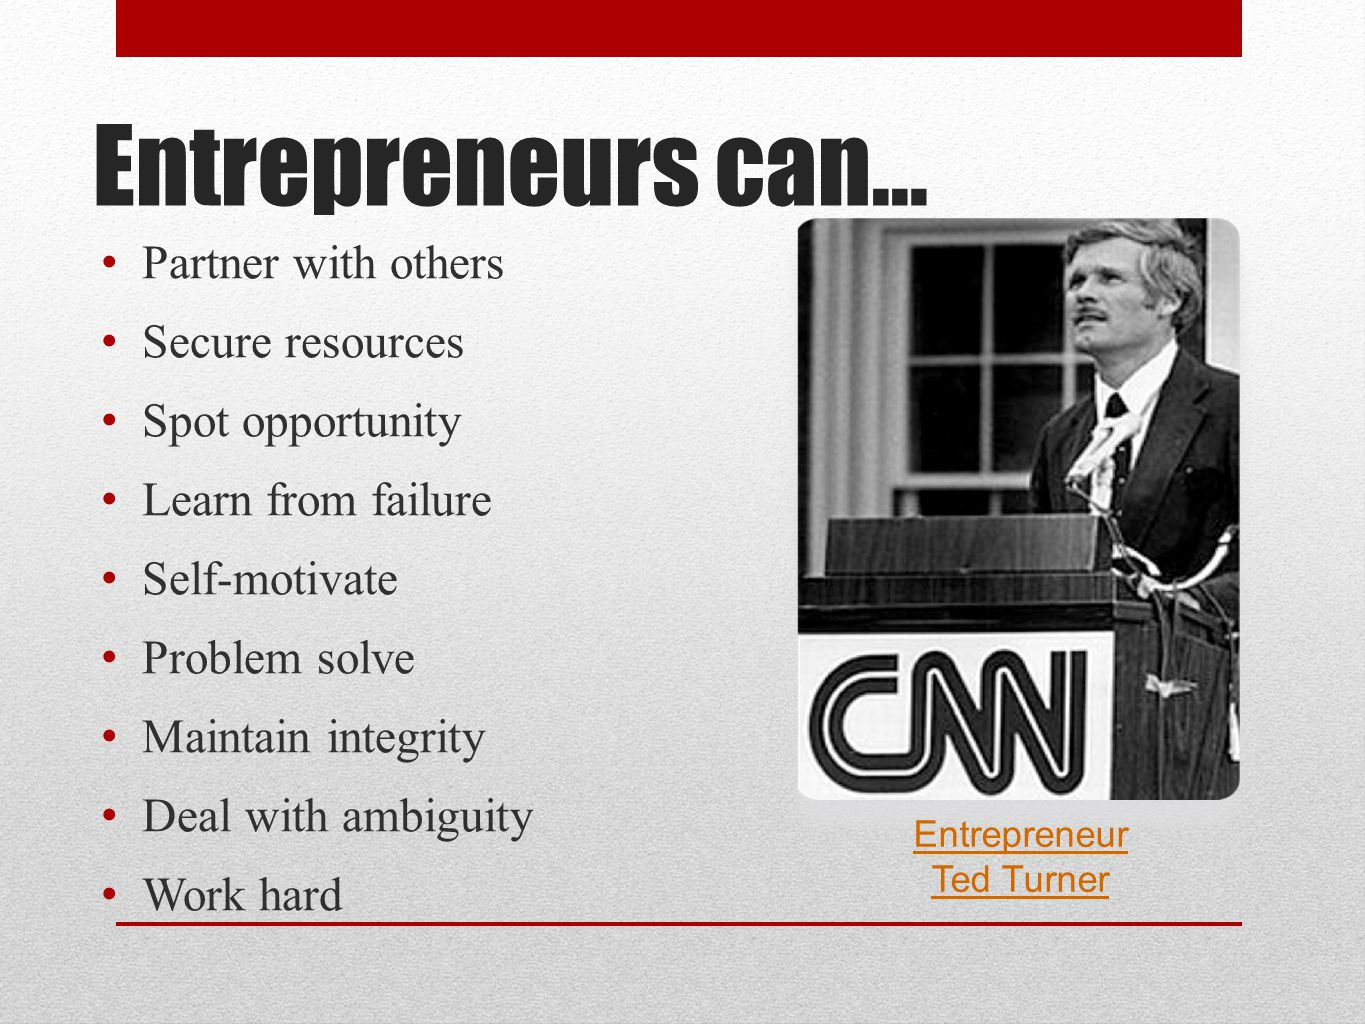 Entrepreneurs can… P artner with others S ecure resources S pot opportunity L earn from failure S elf-motivate P roblem solve M aintain integrity D eal with ambiguity W ork hard Entrepreneur Ted Turner